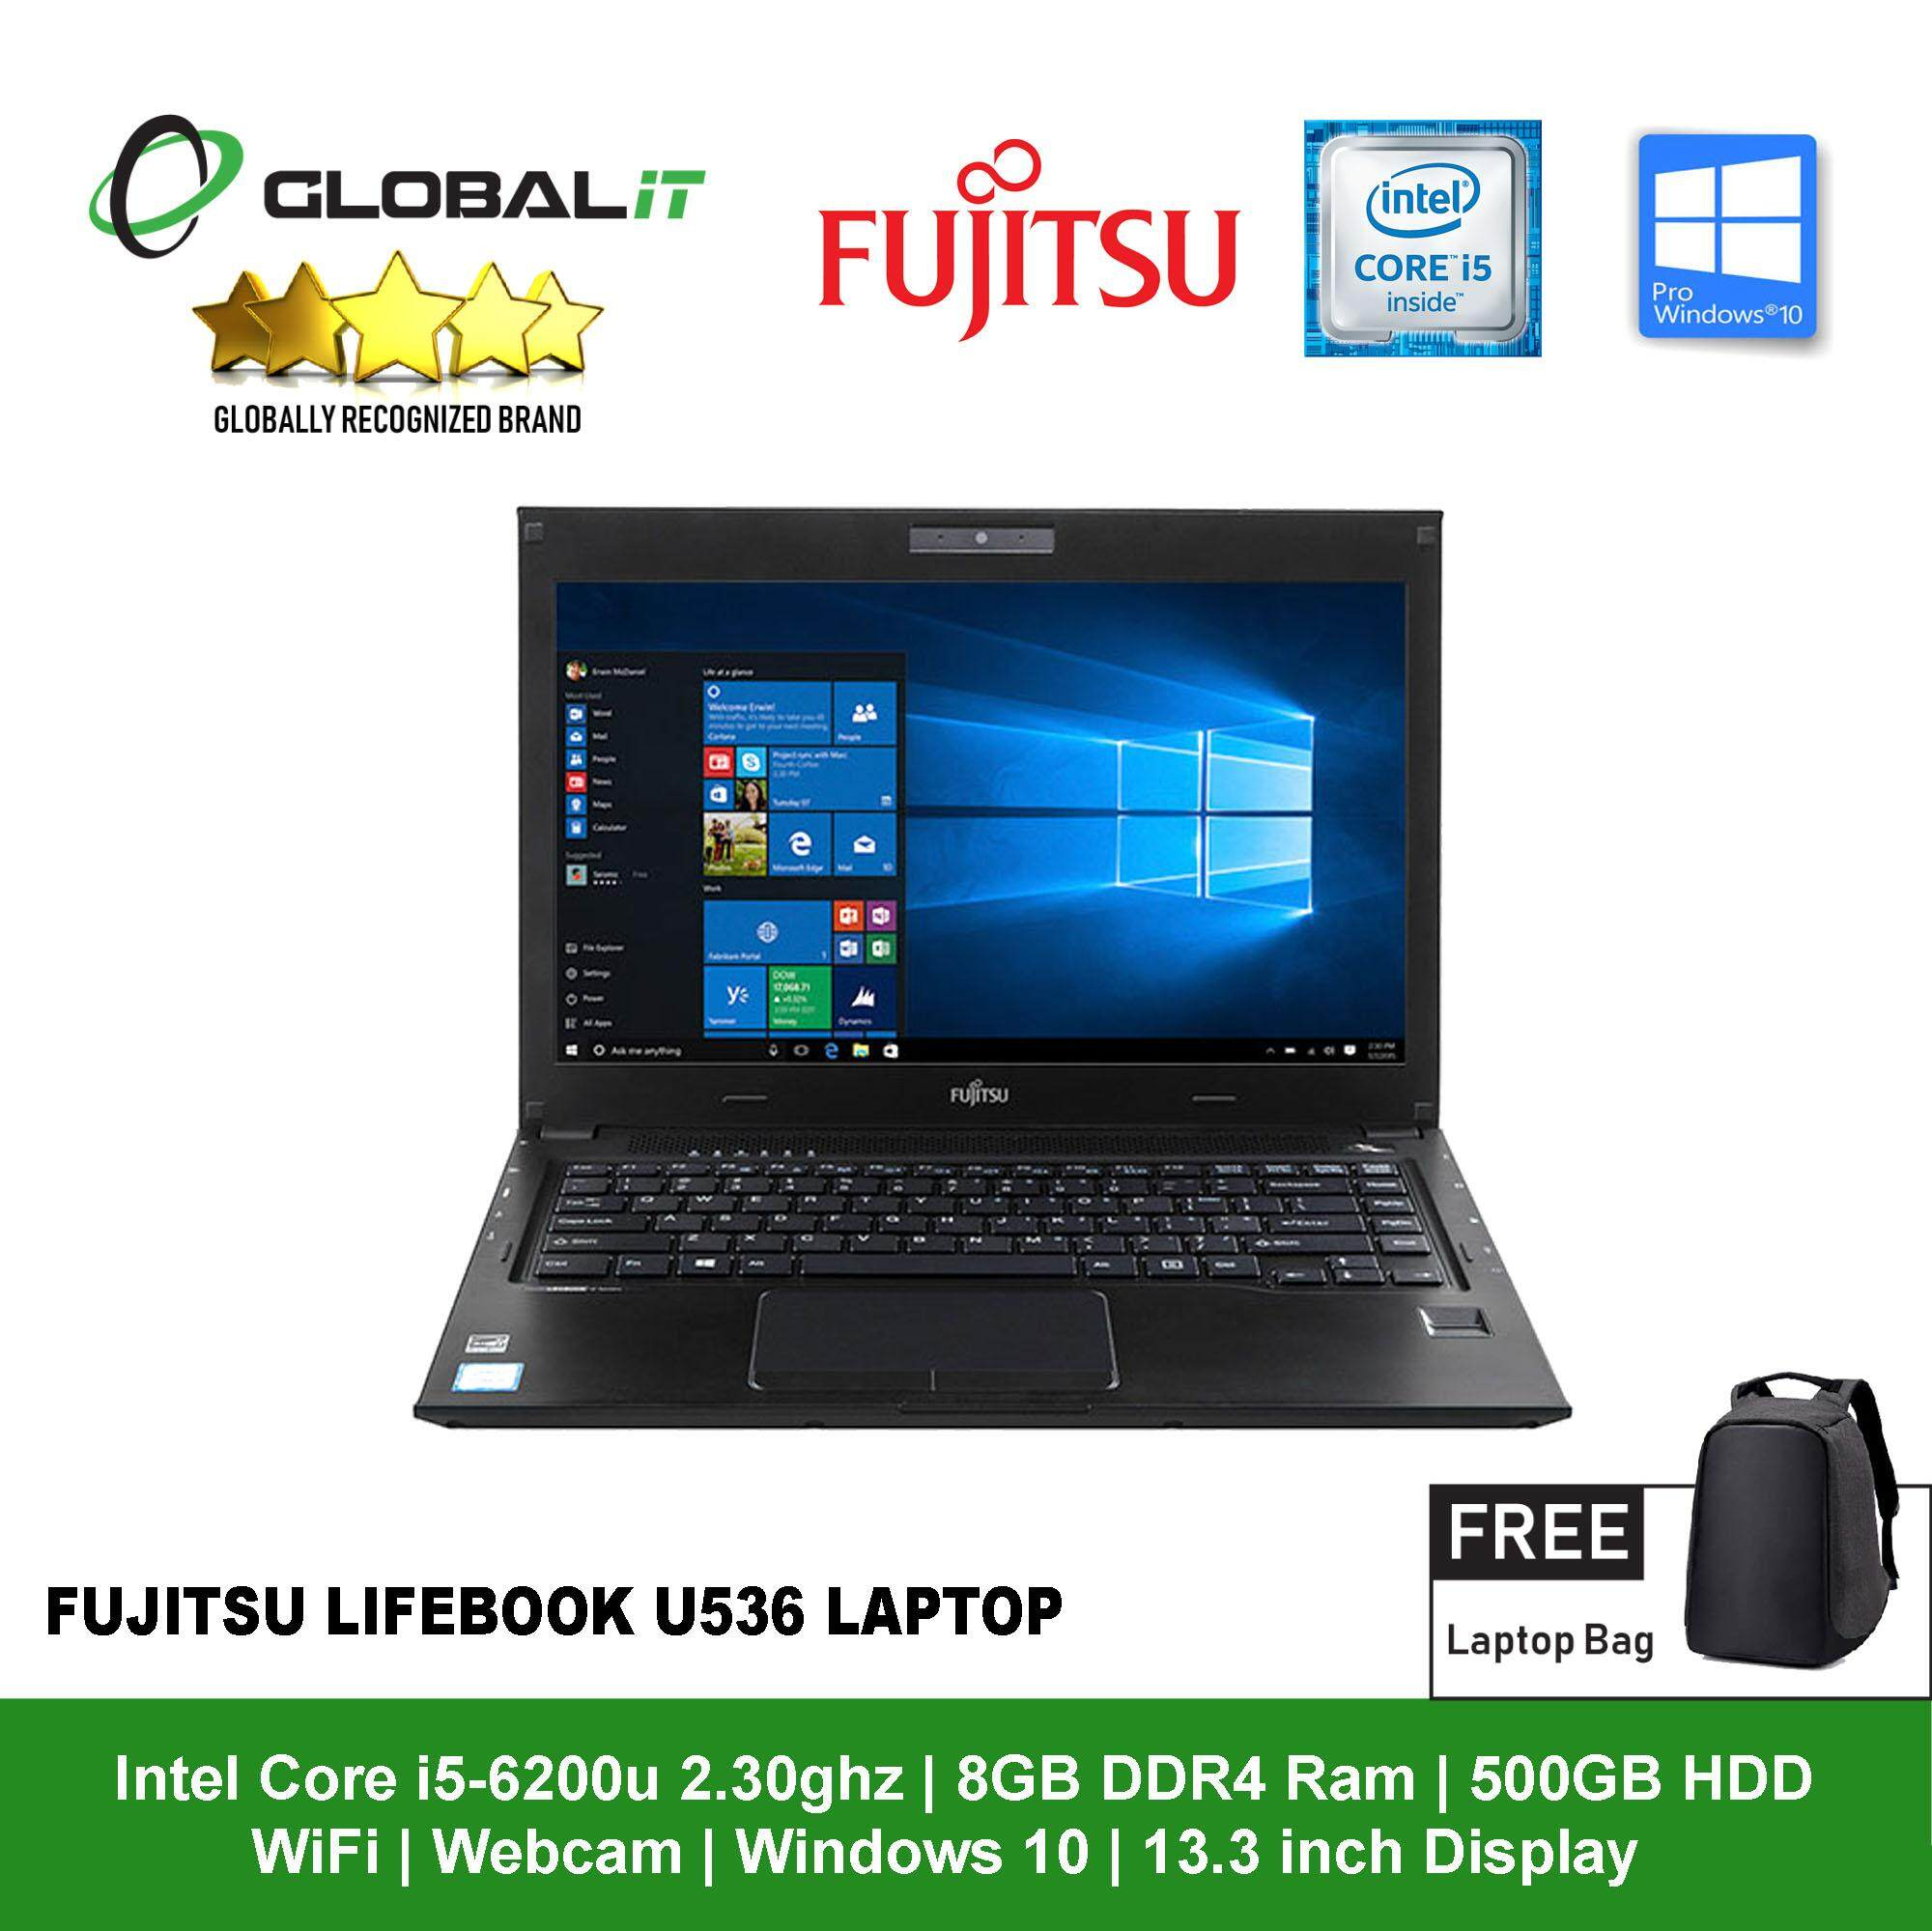 (Refurbished Notebook) Fujitsu Lifebook U536 Laptop / 13.3 inch Display / Intel Core i5-6200U / 8GB DDR4 Ram / 500GB HDD / WiFi / Windows 10 / Webcam Malaysia